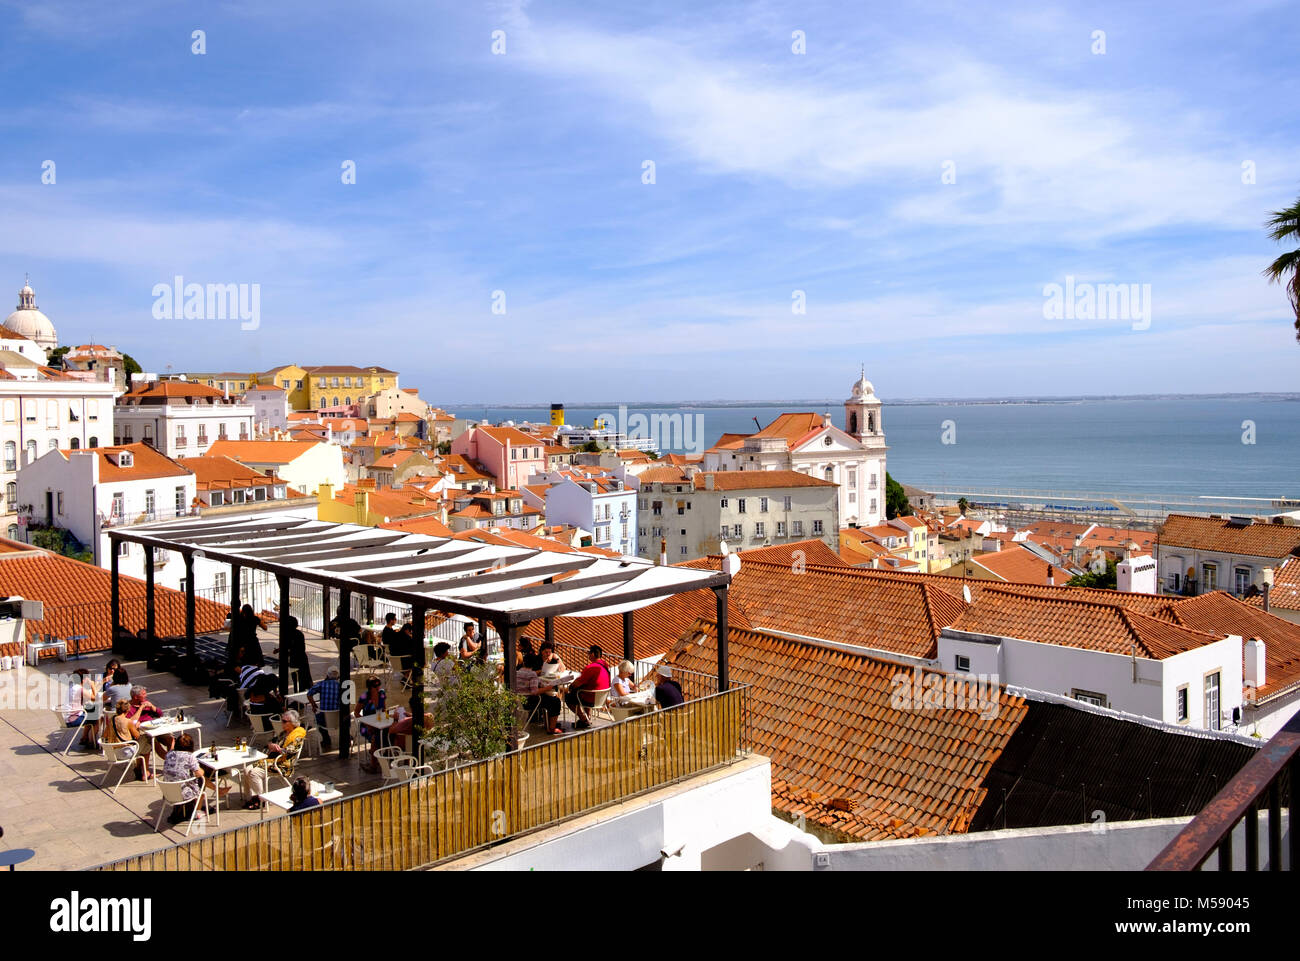 Viewpoint cafe in Alfama overlooking River Tagus in summer , Lisbon, Portugal - Stock Image